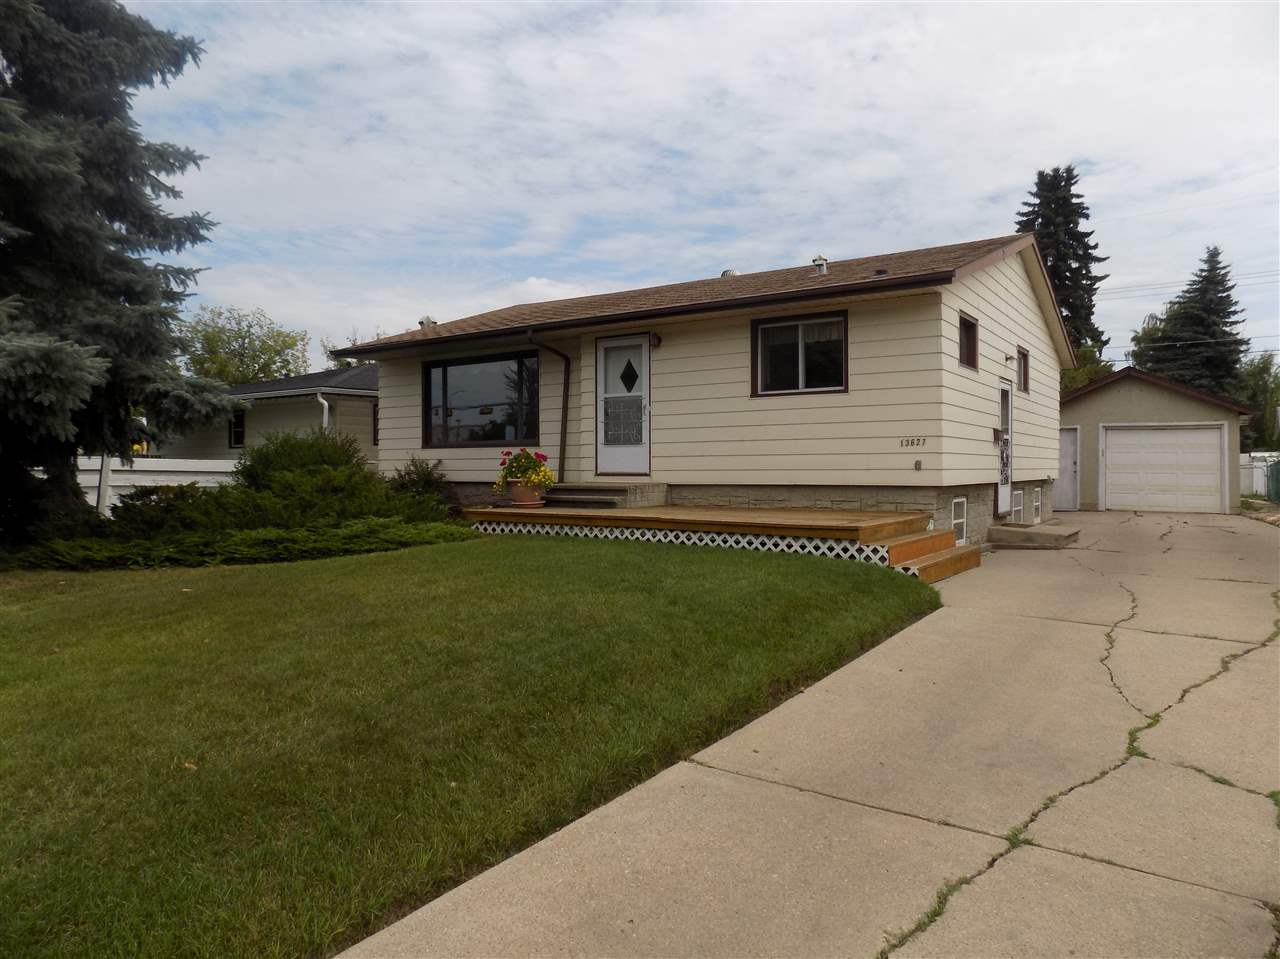 Main Photo: 13627 140 Street in Edmonton: Zone 01 House for sale : MLS® # E4077902